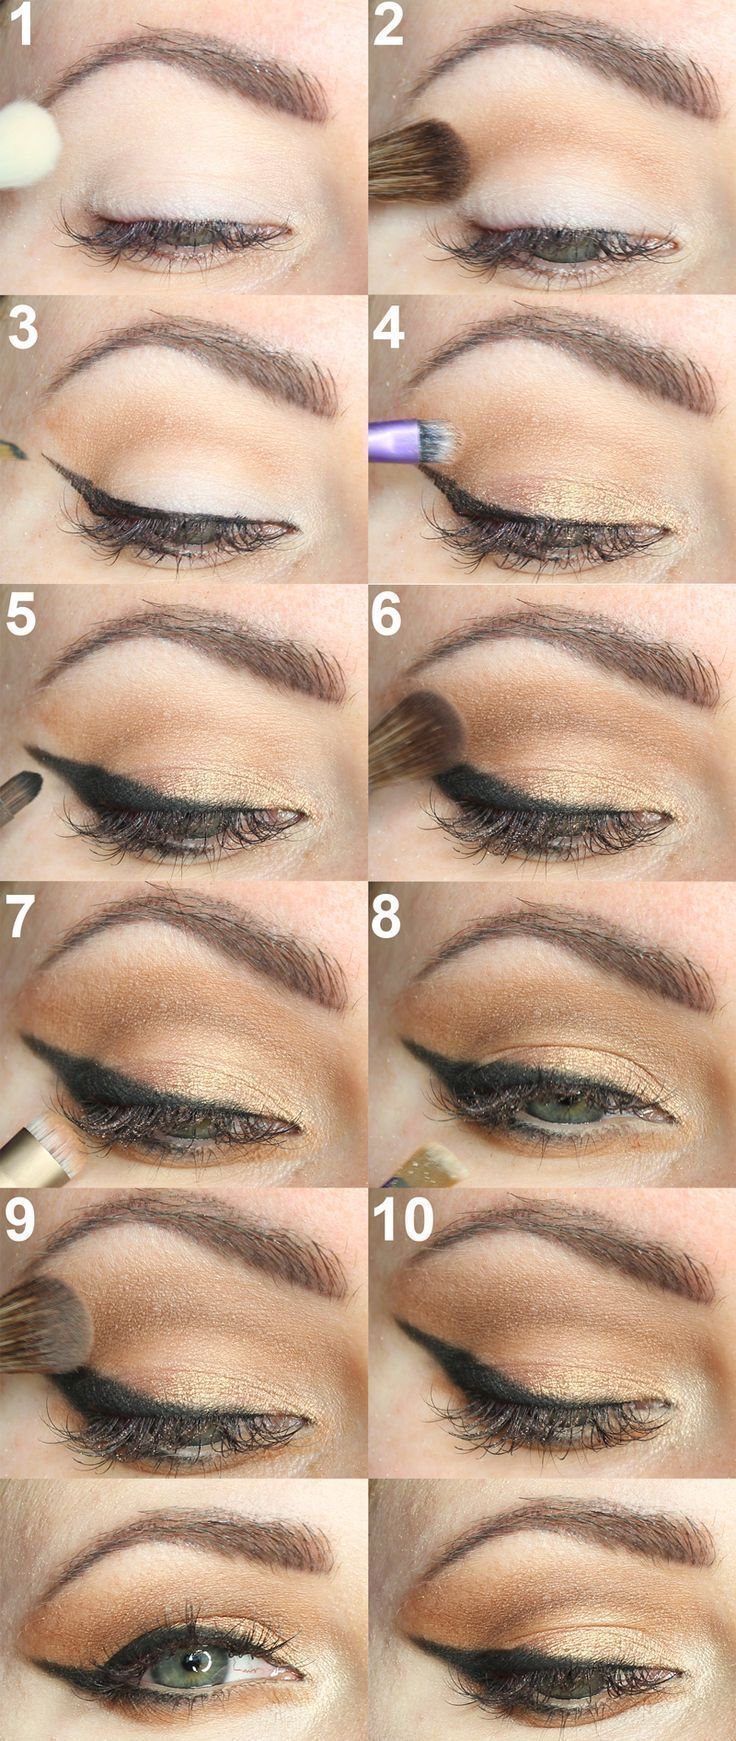 Tarte Tarteist Pro Palette Cat Eye Tutorial - an easy step by step tutorial with the new tarte palette to give you perfect winged liner on hooded eyes! #wingedlinerhacks #wingedlinereasy